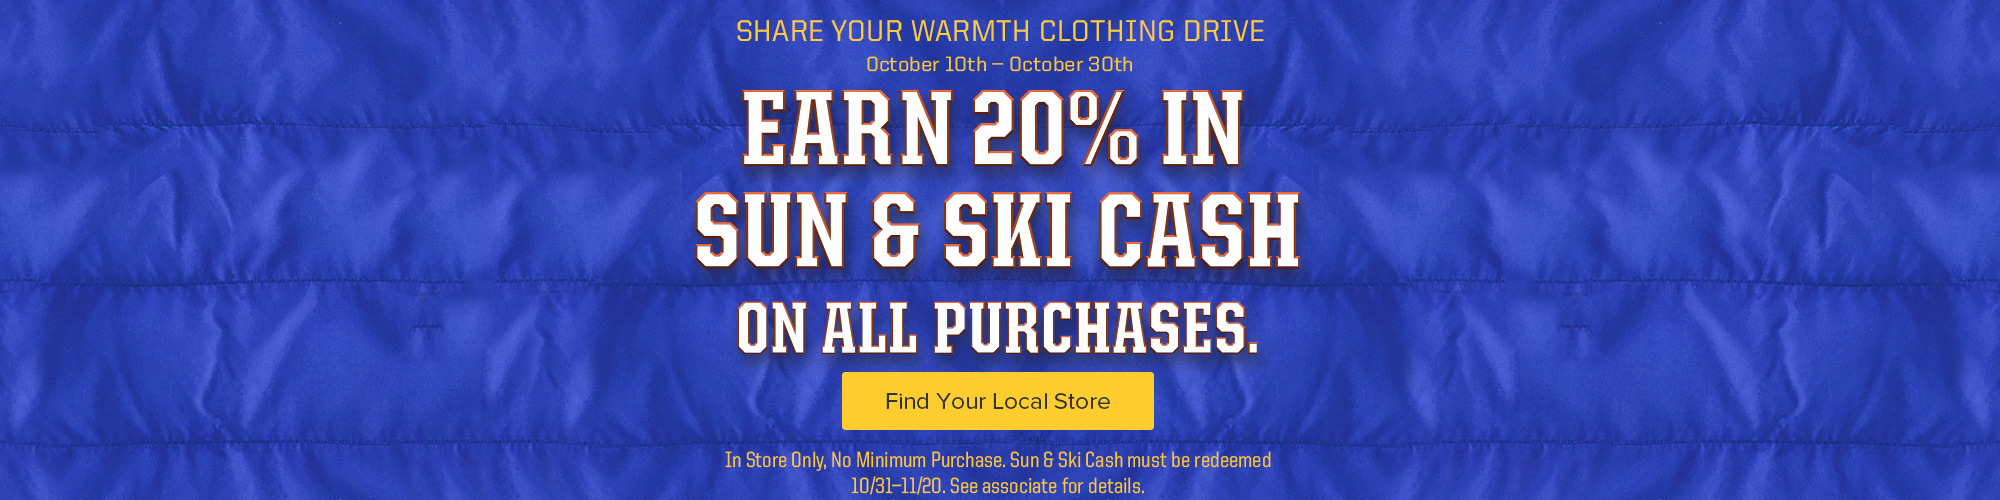 Share Your Warmth - Get $20 Back